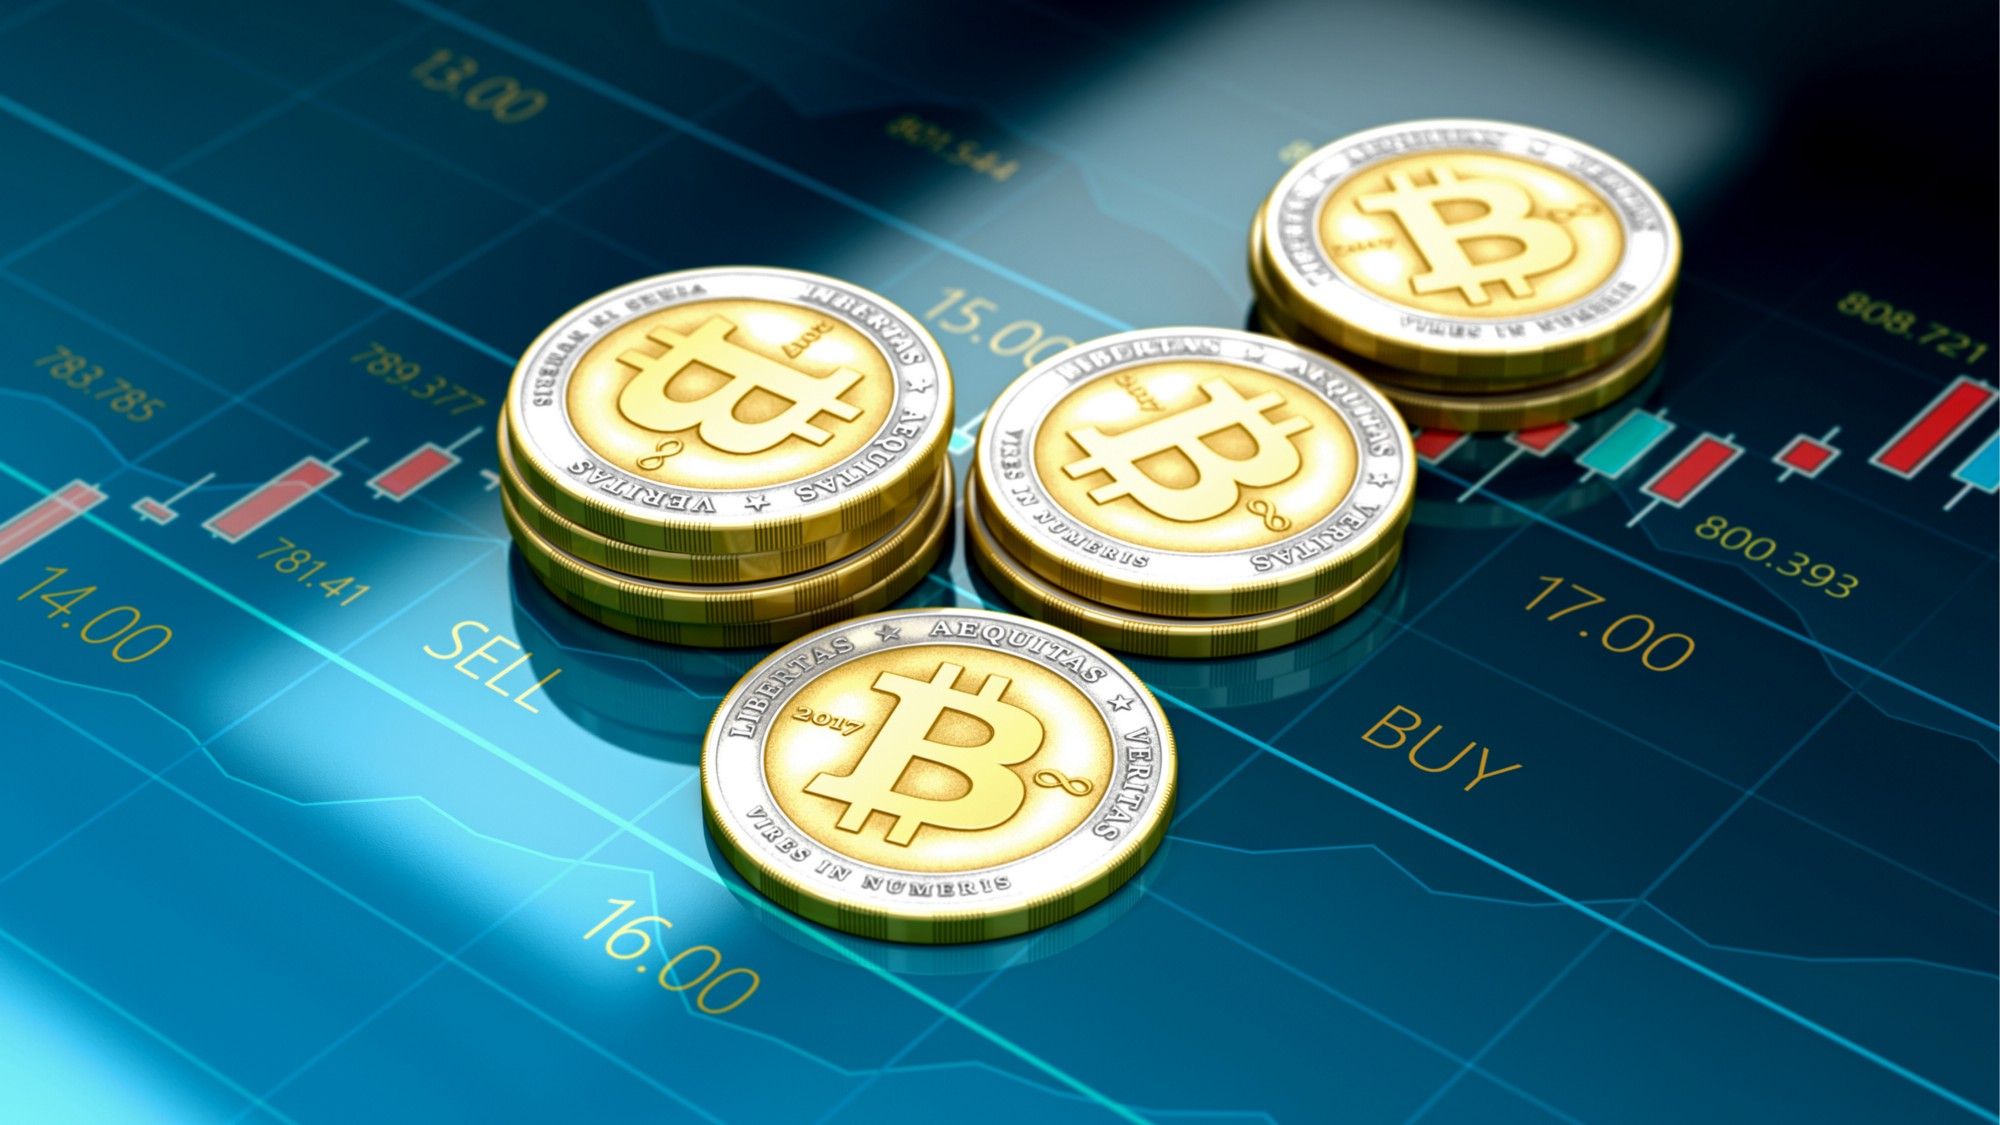 Bitcoin | Nigerians warned against transactions in digital currencies